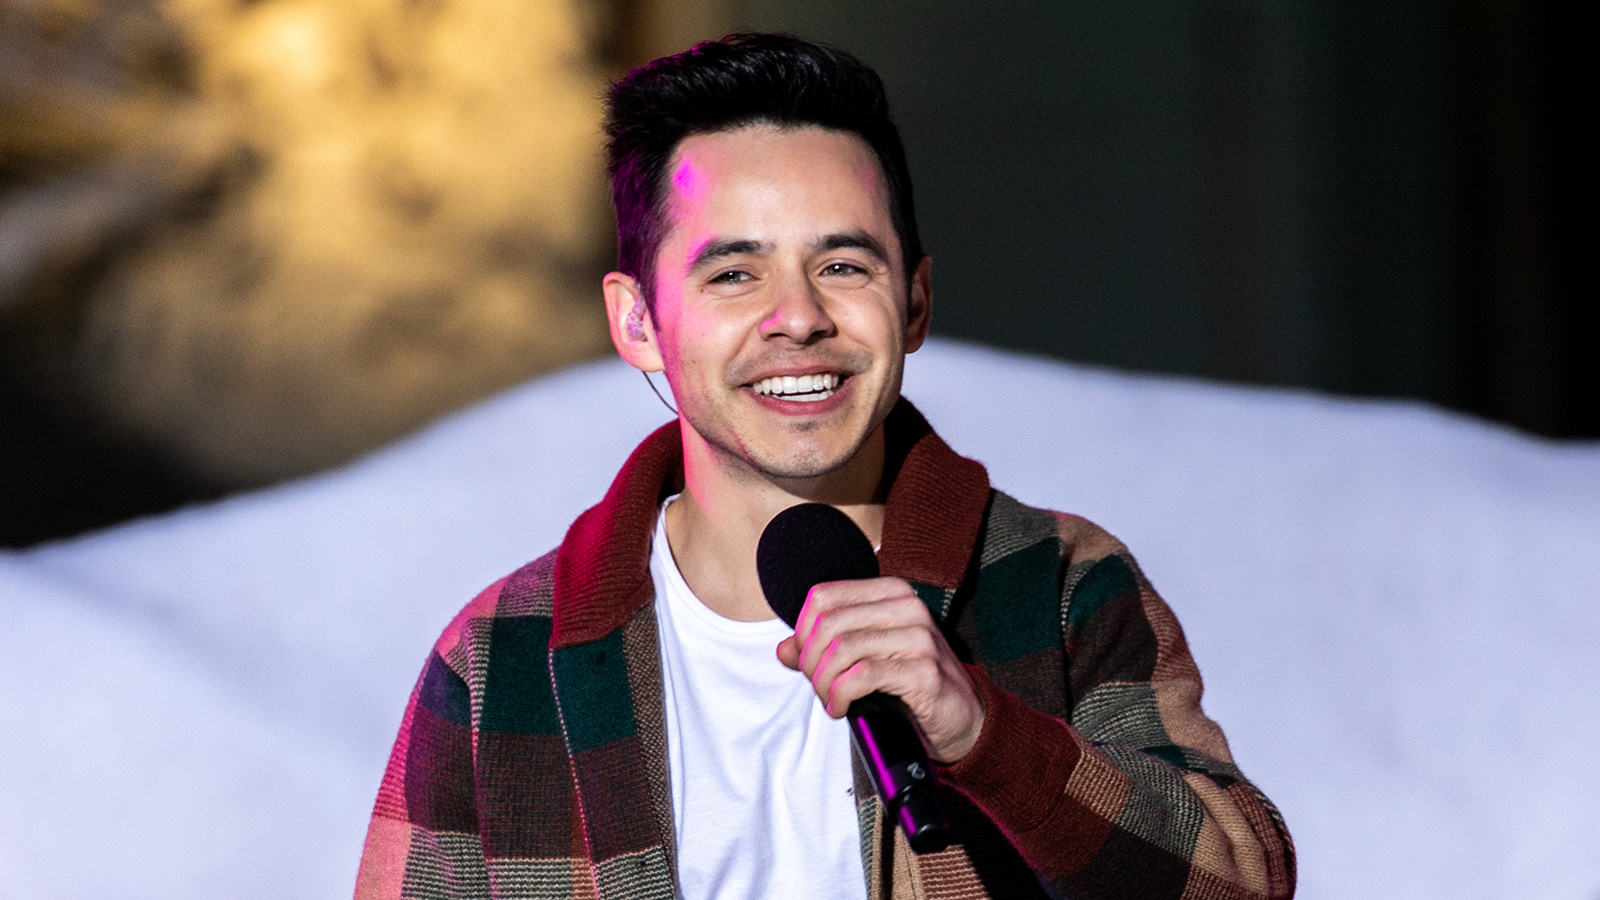 David Archuleta comes out as a member of the LGBTQIA+ community